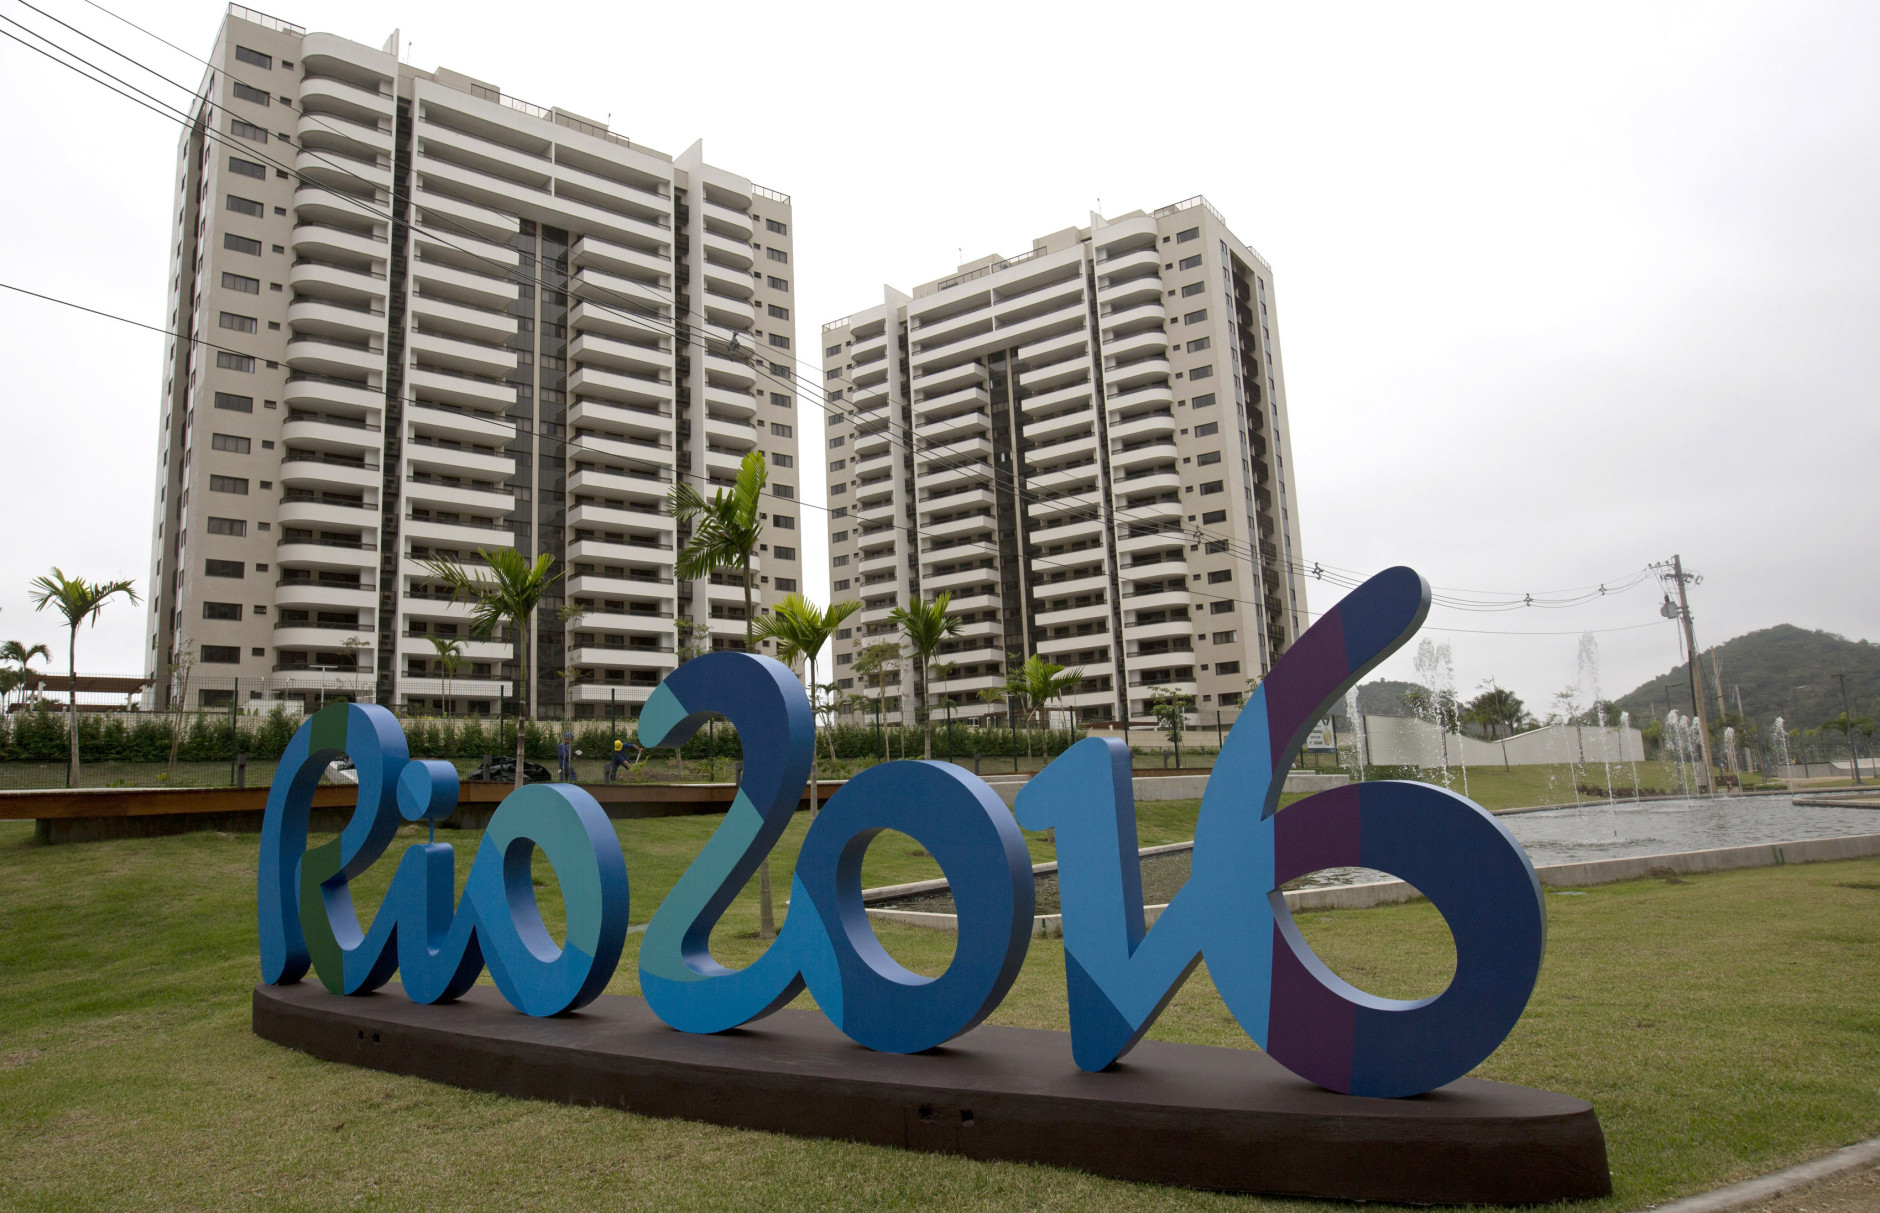 The Rio 2016 sign stands in front of the Olympic Village during a media tour in Rio de Janeiro, Brazil, Thursday, June 23, 2016. The organizers of the Rio de Janeiro Olympics have unveiled the athletes' village, where nearly 11,000 competitors and some 6,000 coaches and other team members will stay during the Aug. 5-21 games. (AP Photo/Silvia Izquierdo)